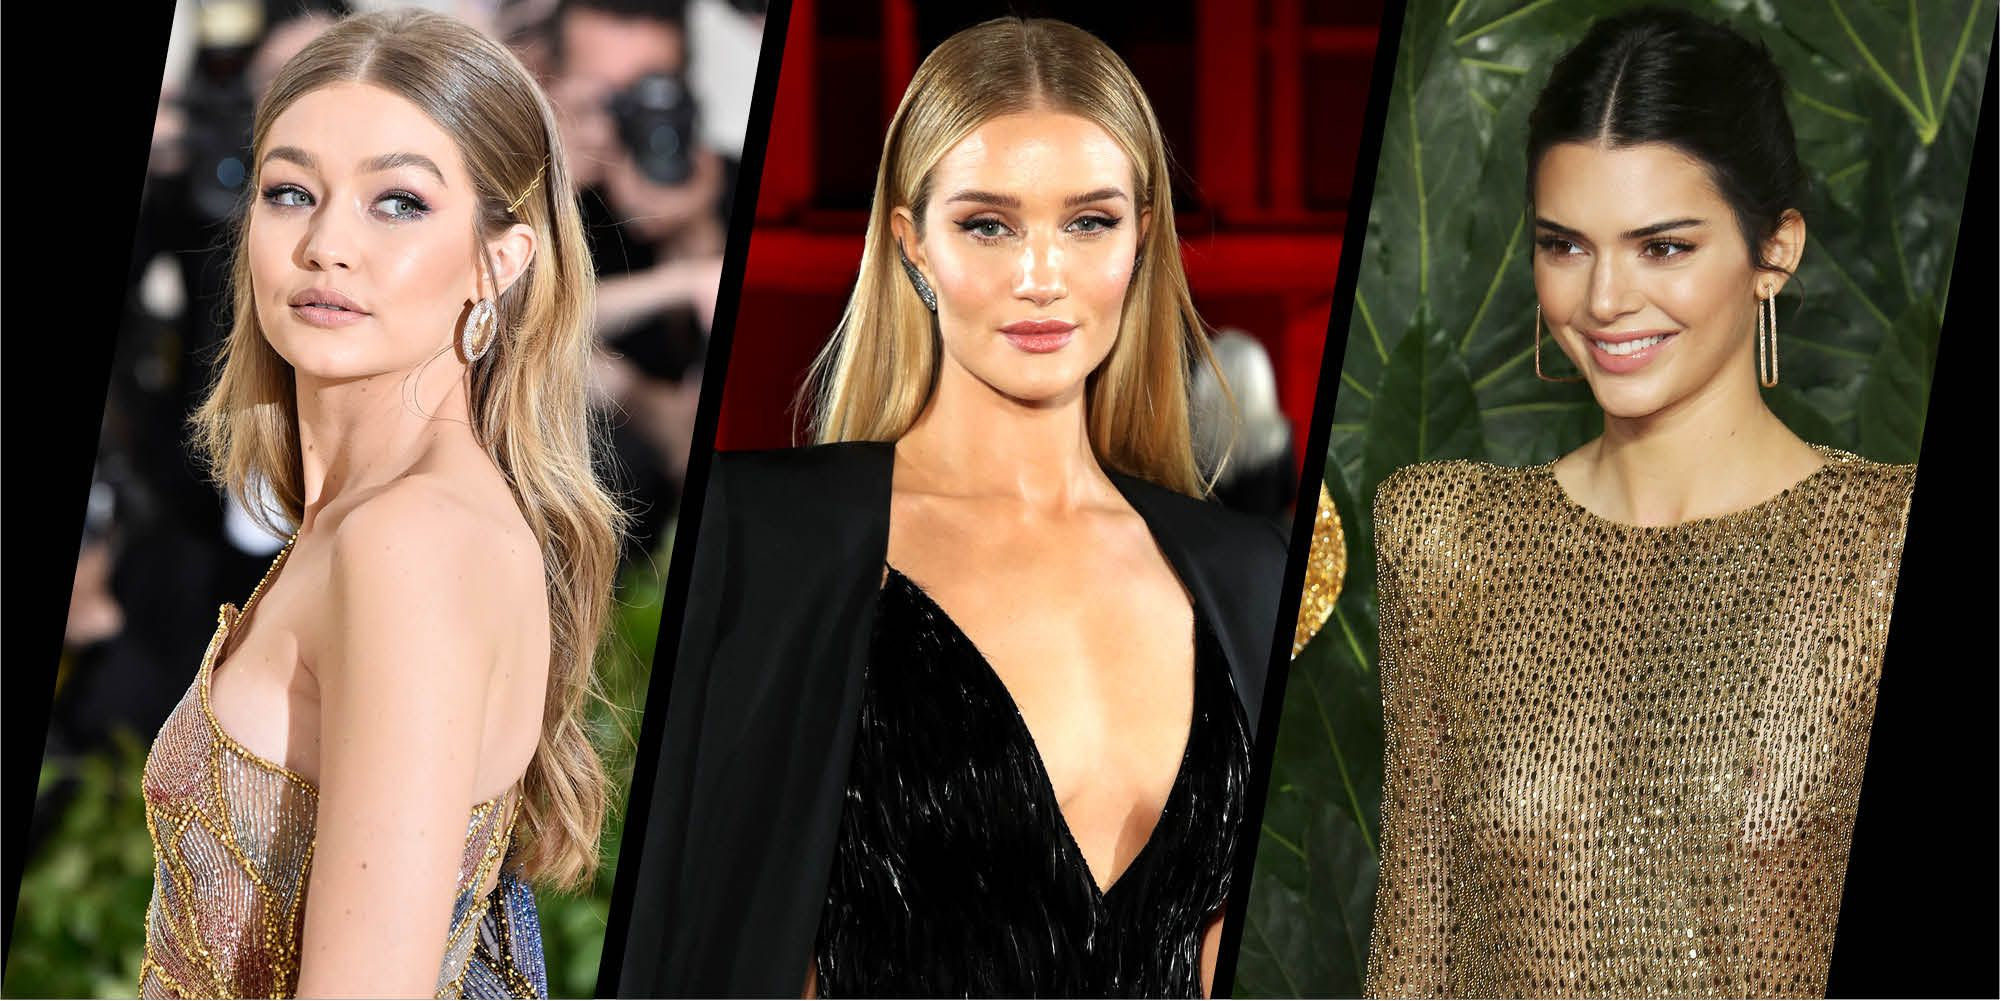 Top 10 Highest Paid Models